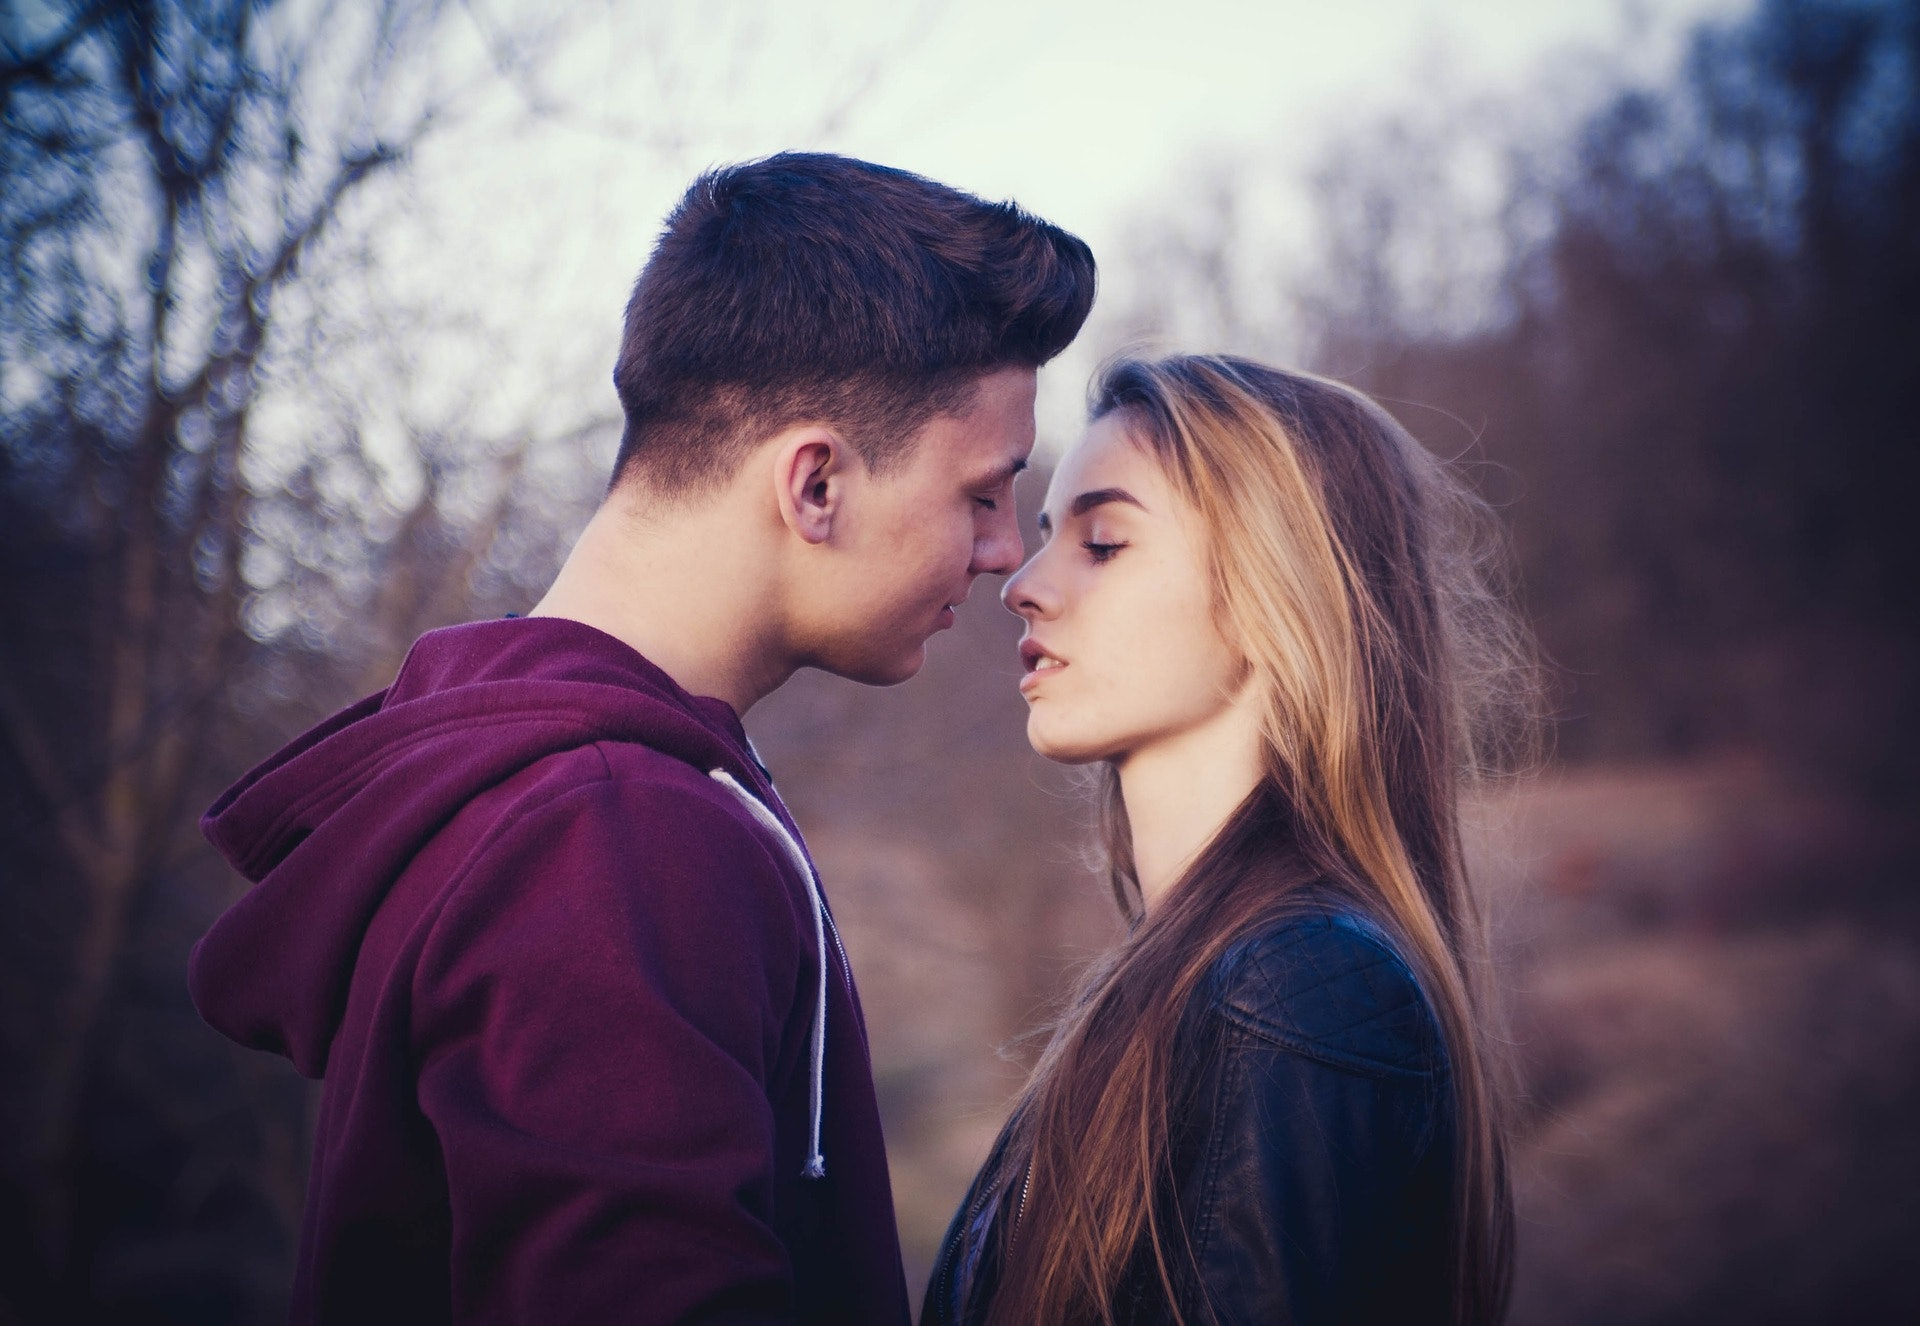 How to lean in for a kiss with a guy